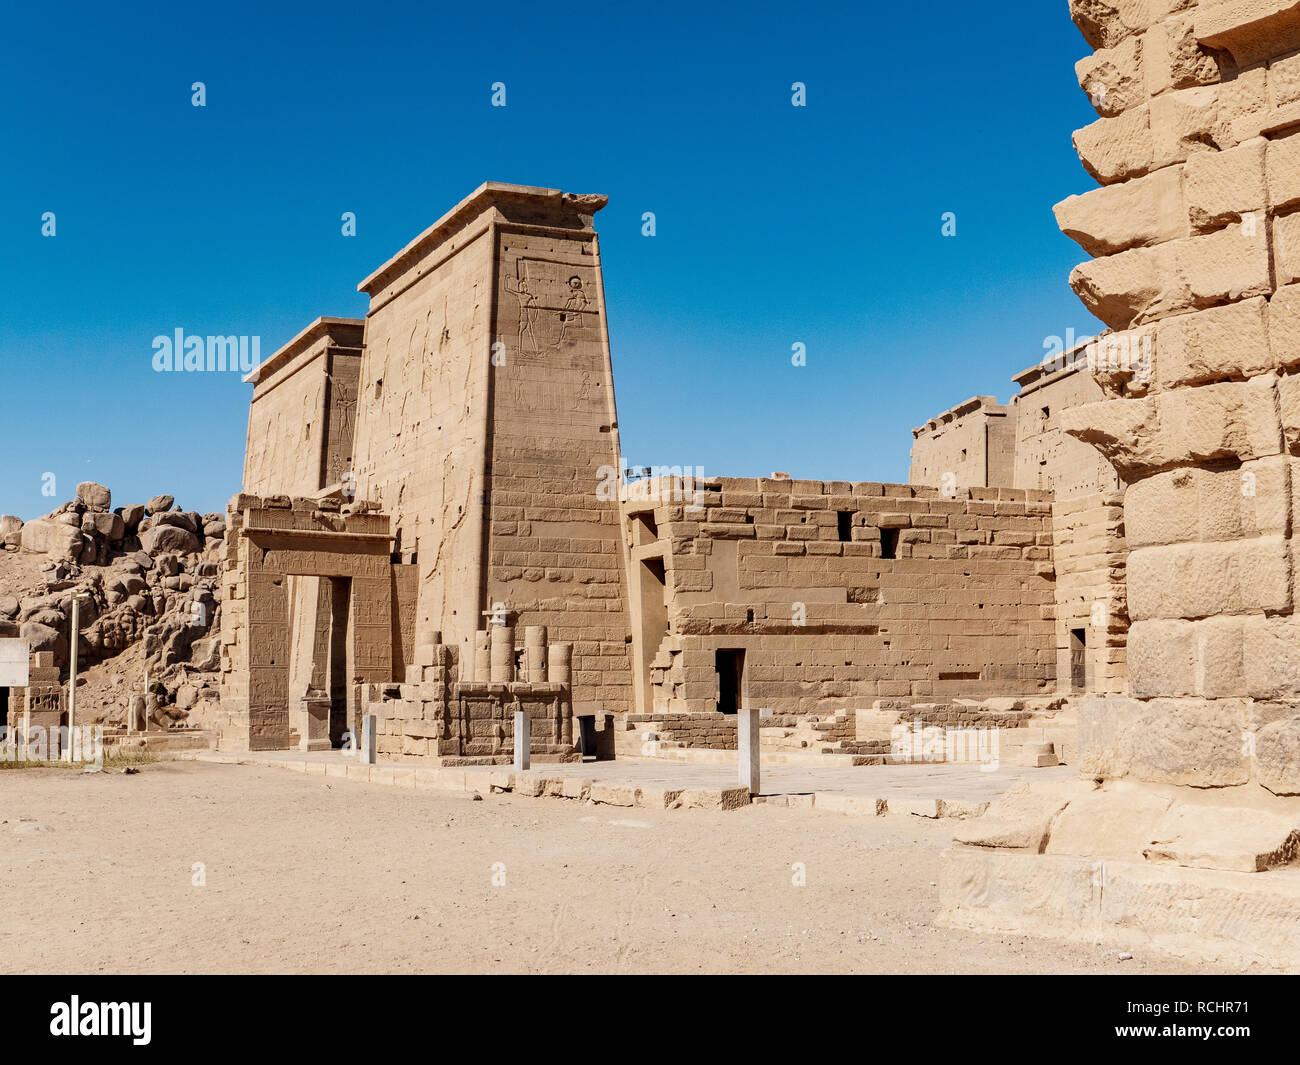 The Ancient Temple Of Philae Near Aswan In Egypt One Of The Most Important Tourist Attractions In Egypt Stock Photo Alamy